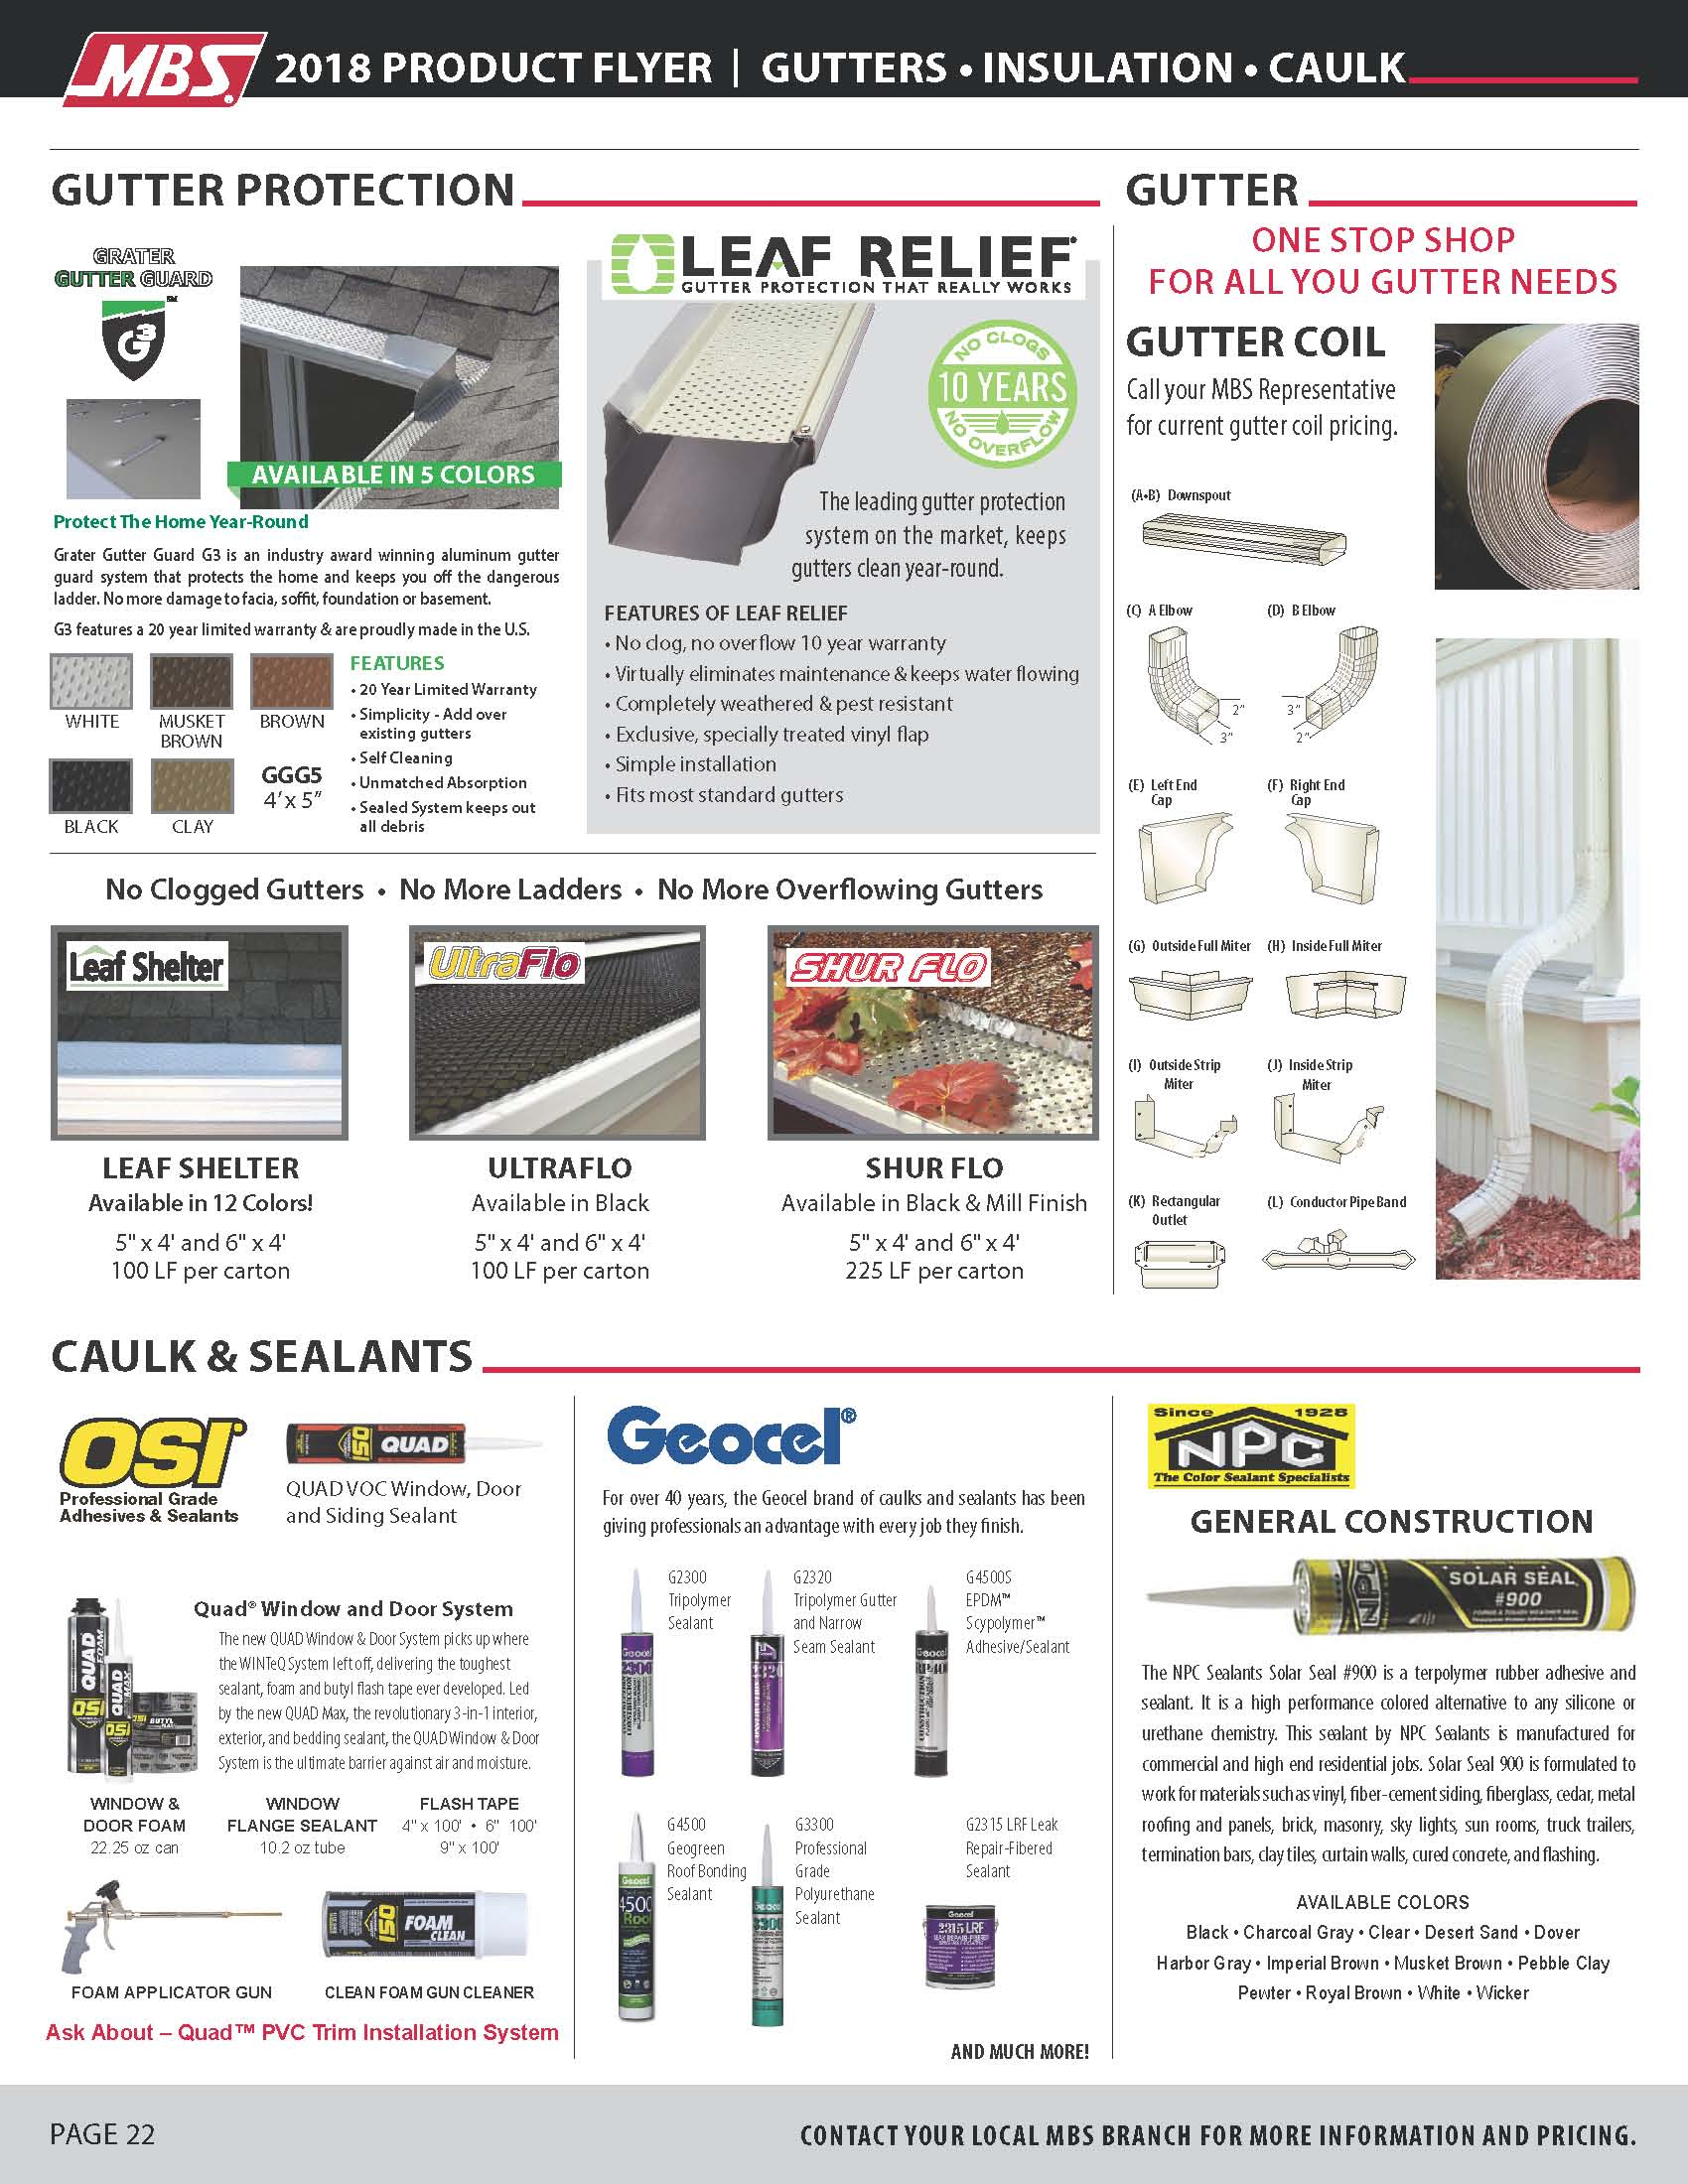 gutters, insulation, caulk flyer